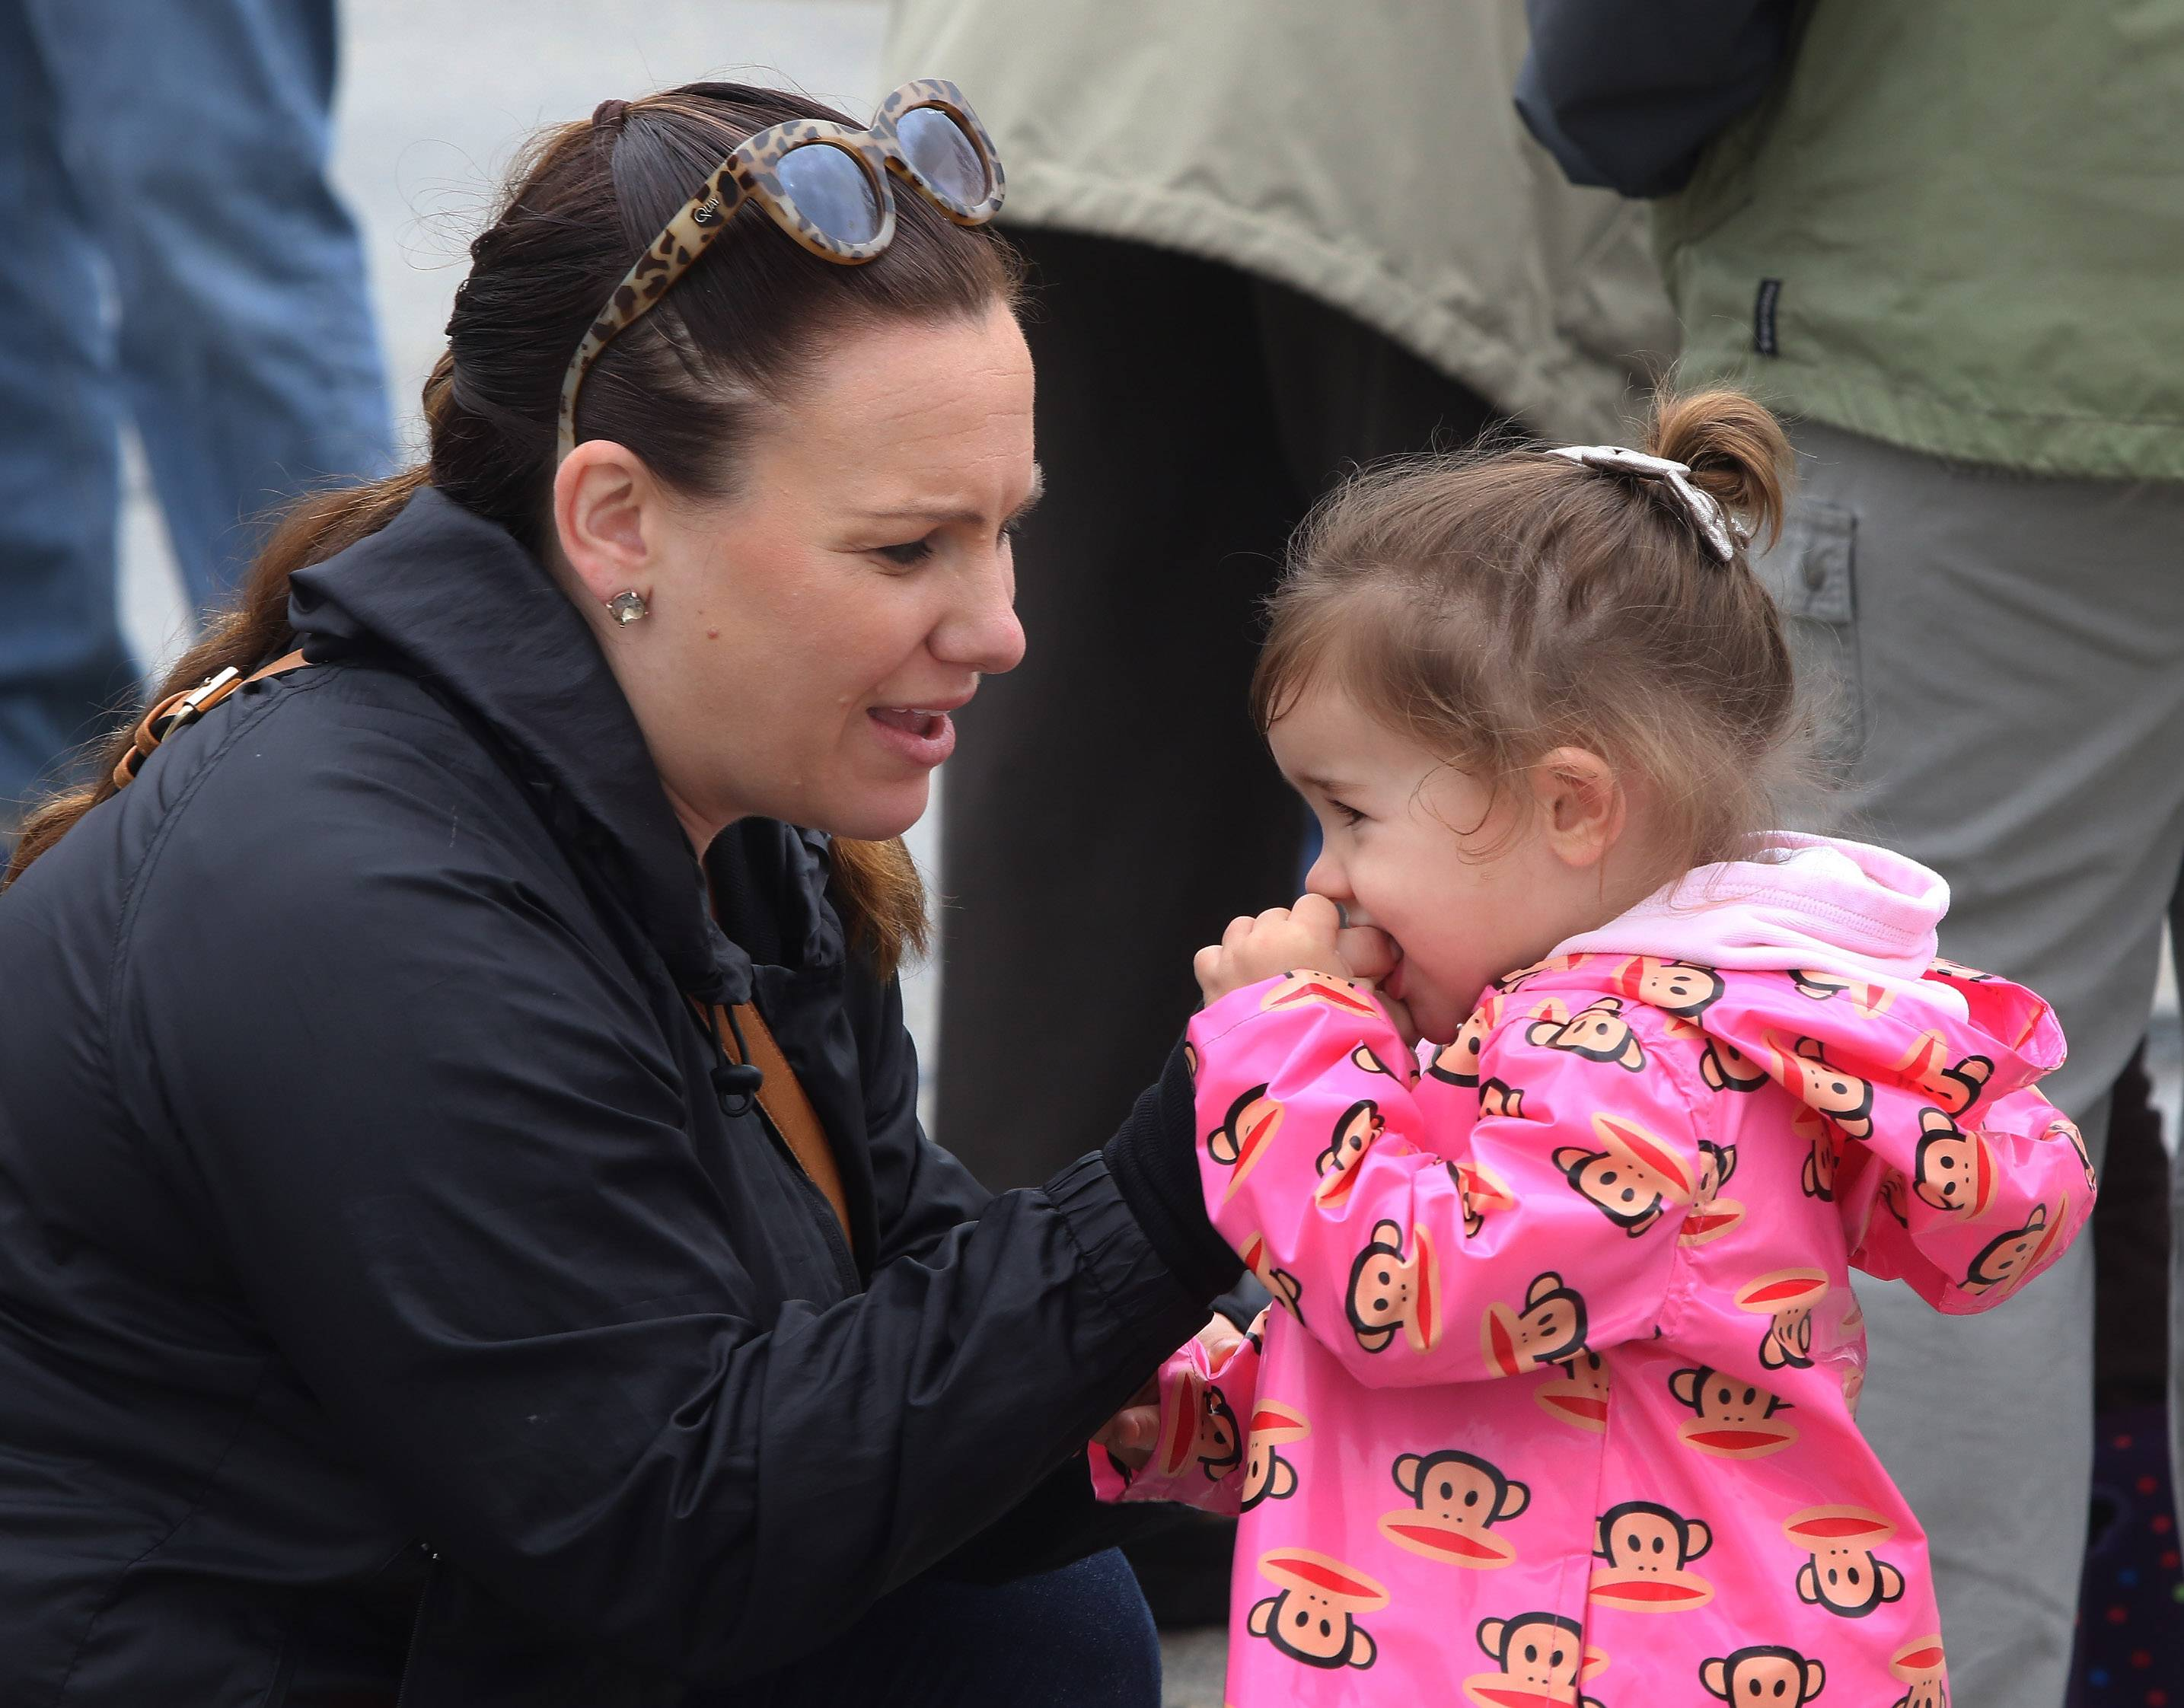 Kelly Sauter of Arlington Heights gives her daughter, Gemma, 2, a piece of maple sugar to taste Sunday during the maple syrup hike Sunday hosted by the Lake County Forest Preserve at Ryerson Woods near Riverwoods.